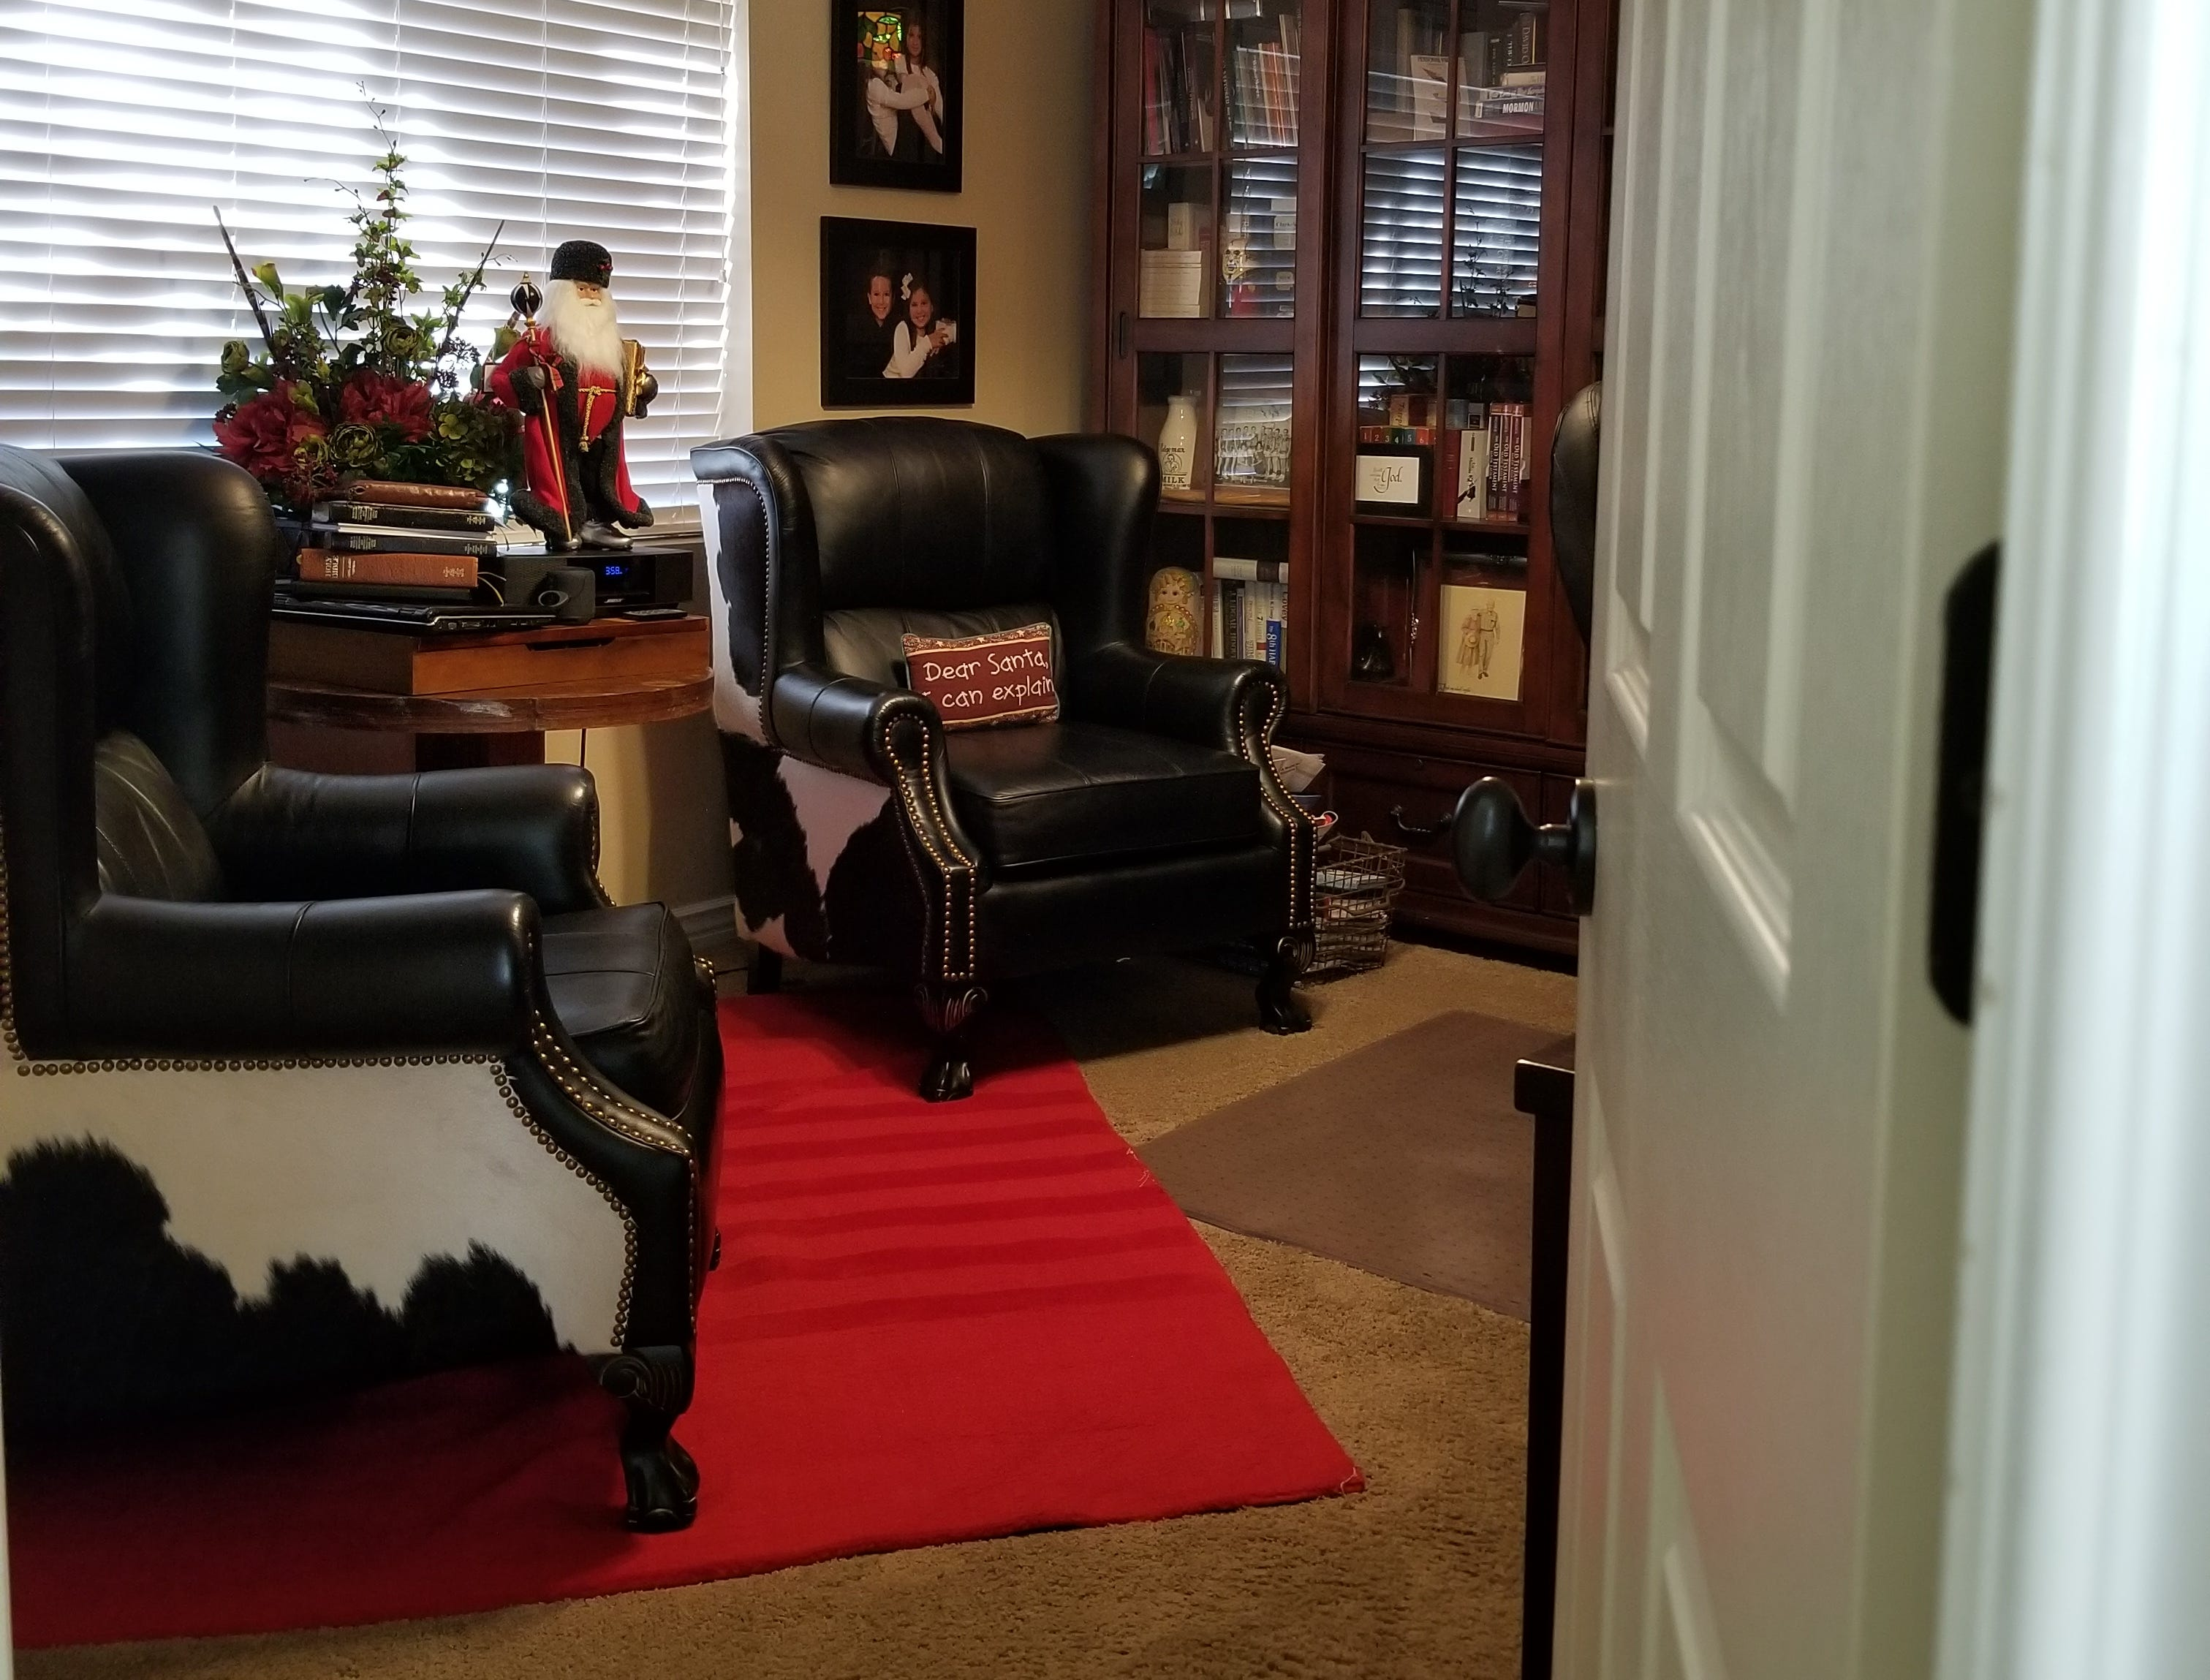 """The fourth bedroom suite was converted to an office as the Lee children flew the nest. It is anchored by two large leather wingback chairs sporting Holstein hides.  A Tiffany chandelier, bookcase and large desk complete the room. """"Dear Santa, I can explain"""" and """"Can I show you the right way to do that?"""" signage reflects the playful personality of the family.  A full-size bathroom completes the west end of the home."""